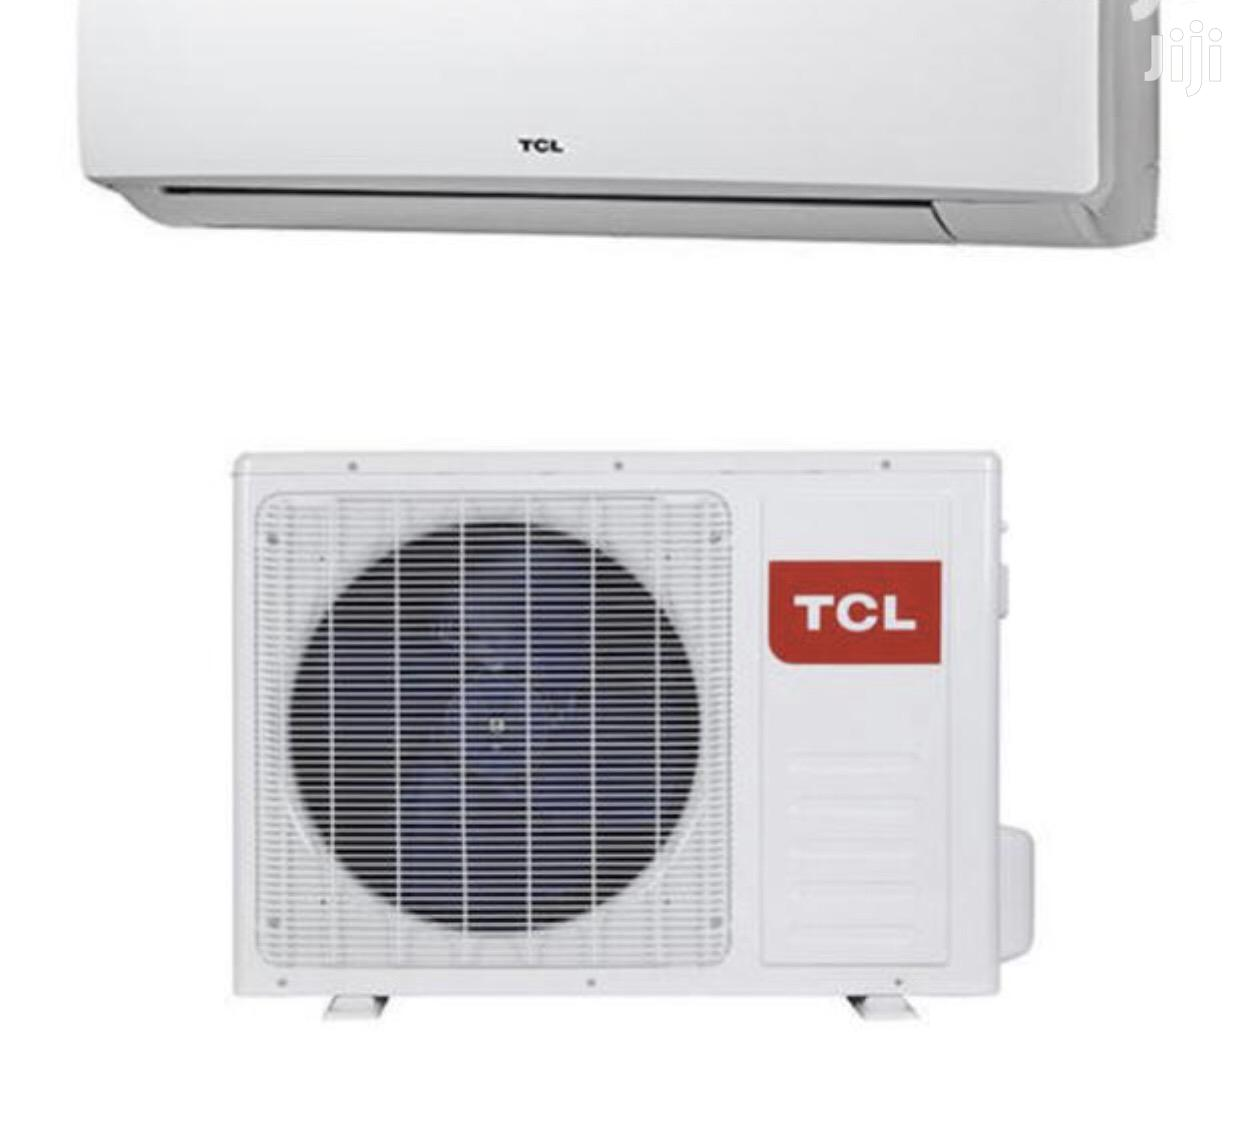 TCL 2.0 HP Split Air Conditioner New